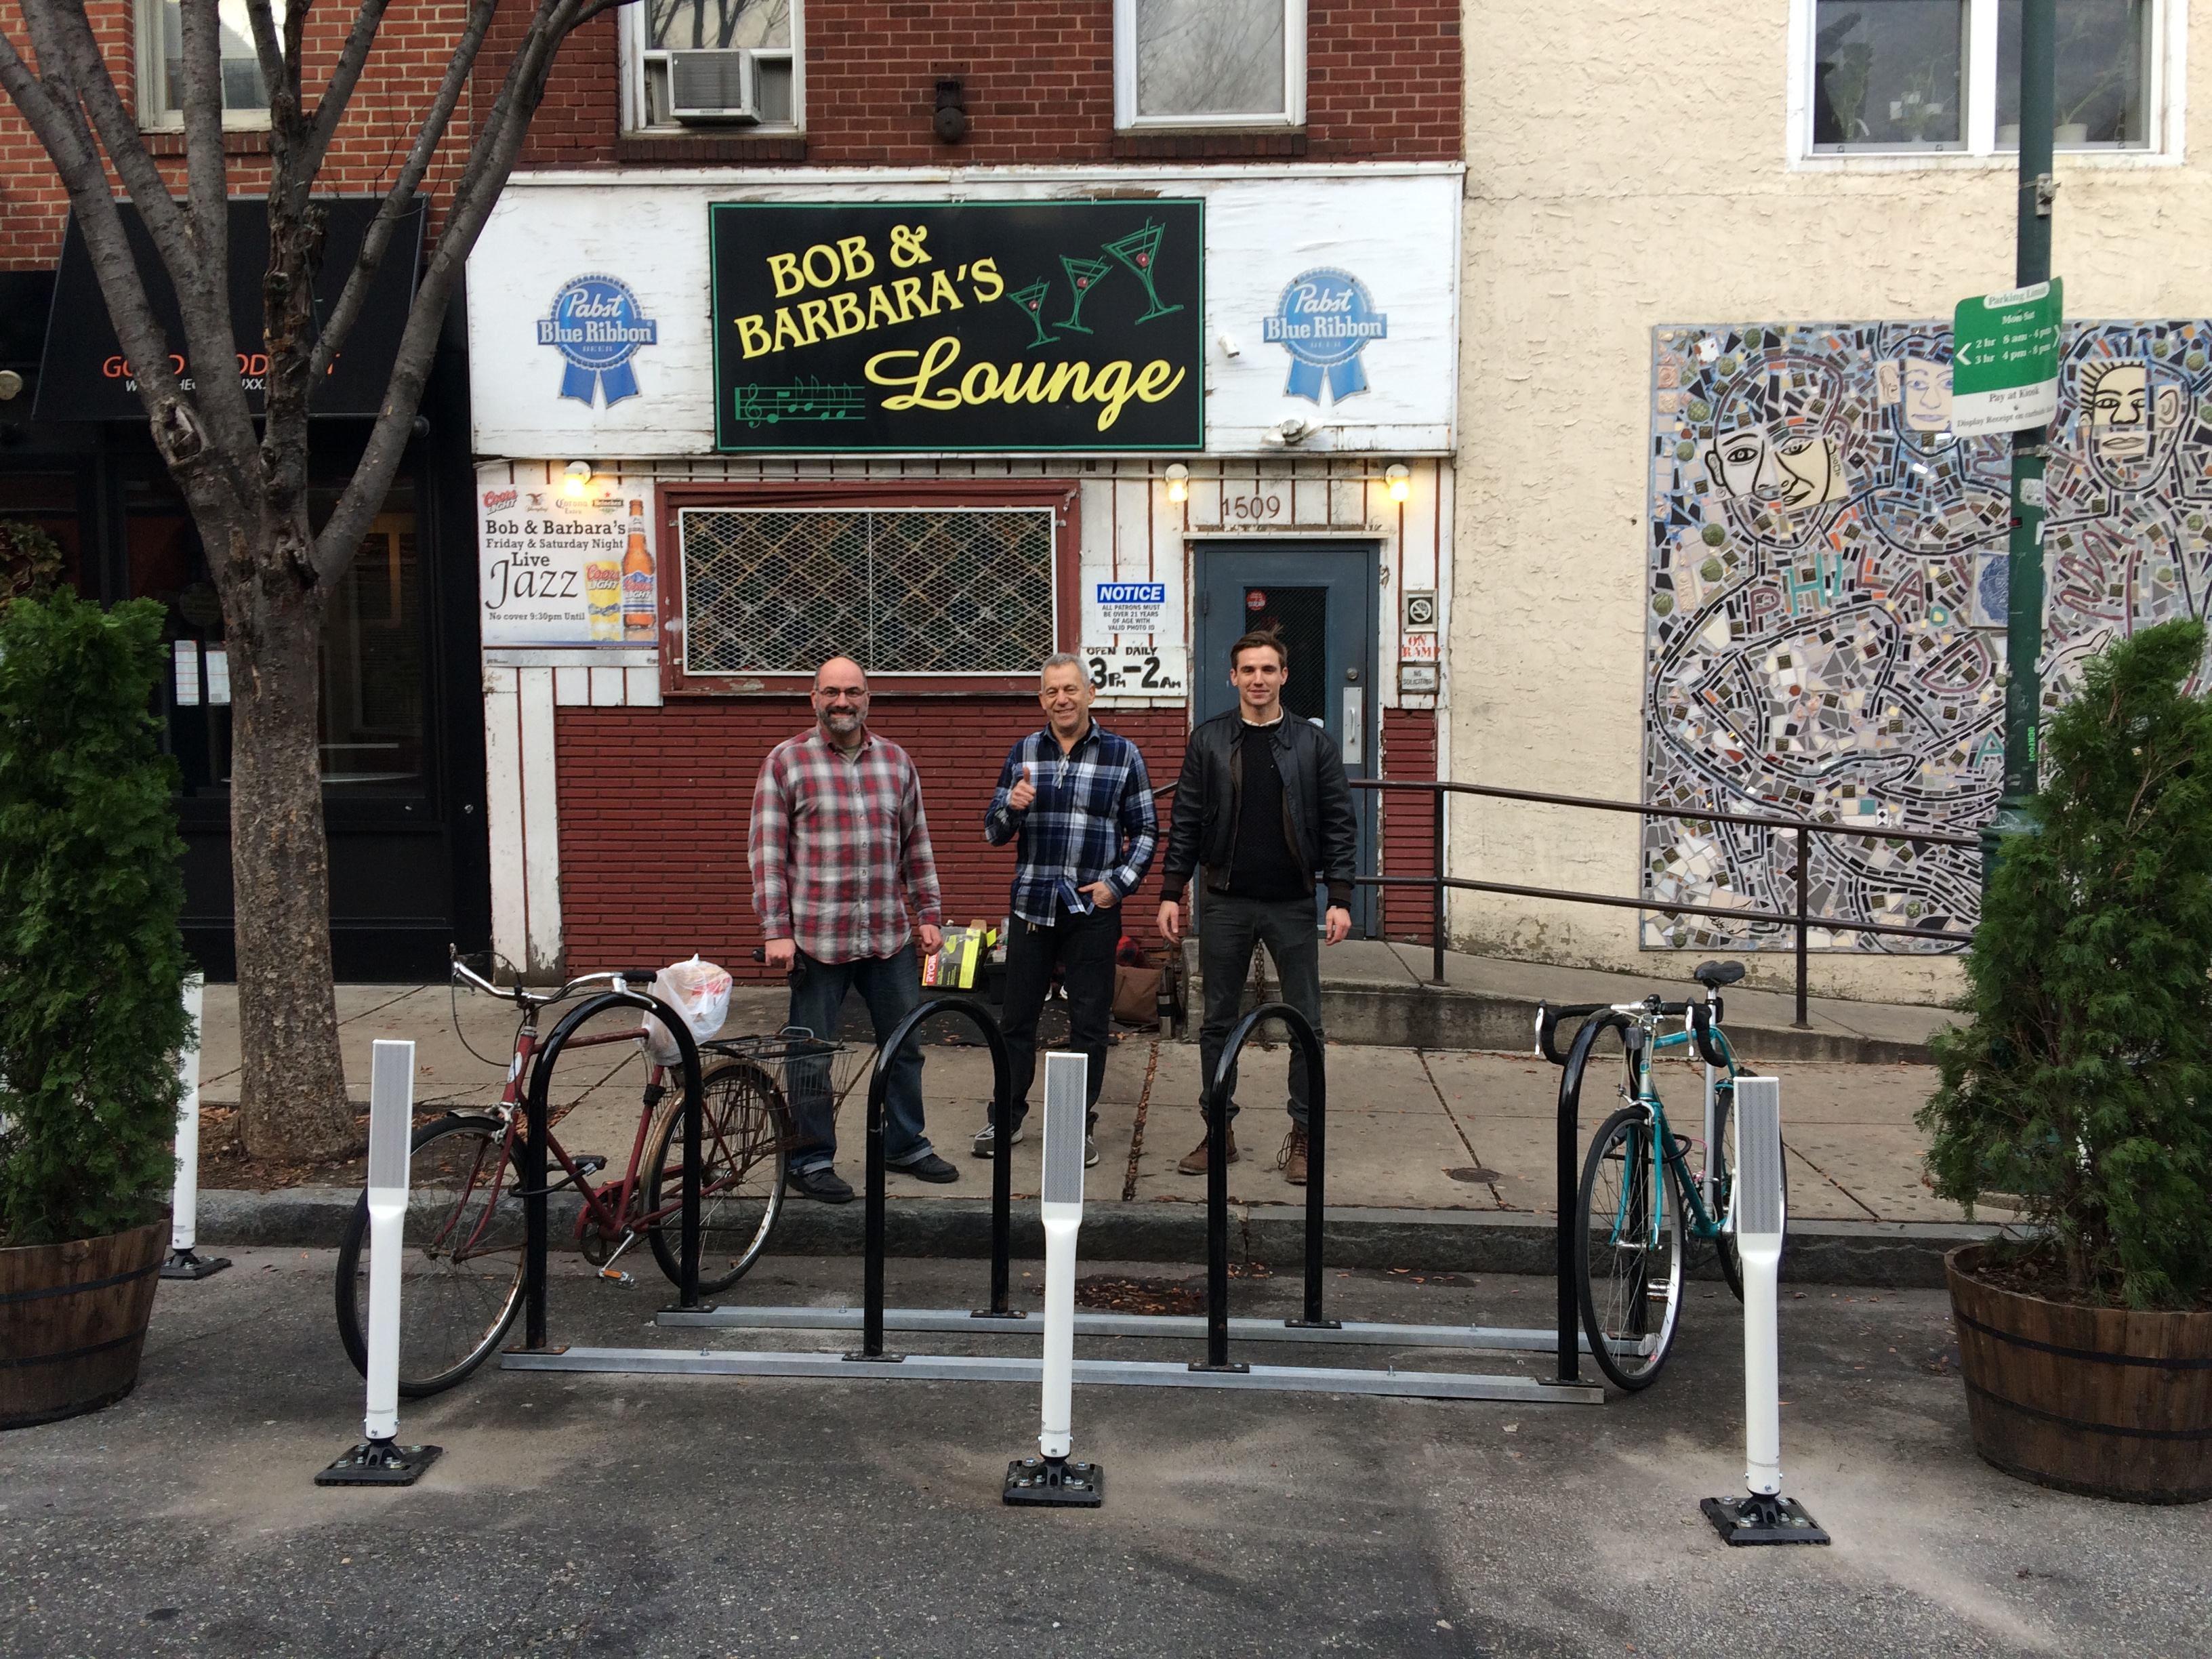 Install team poses with newly installed bike corral in front of Bob & Barbara's (from L to R): Marcus Ferreria, Jack Prince, Steve Cobb